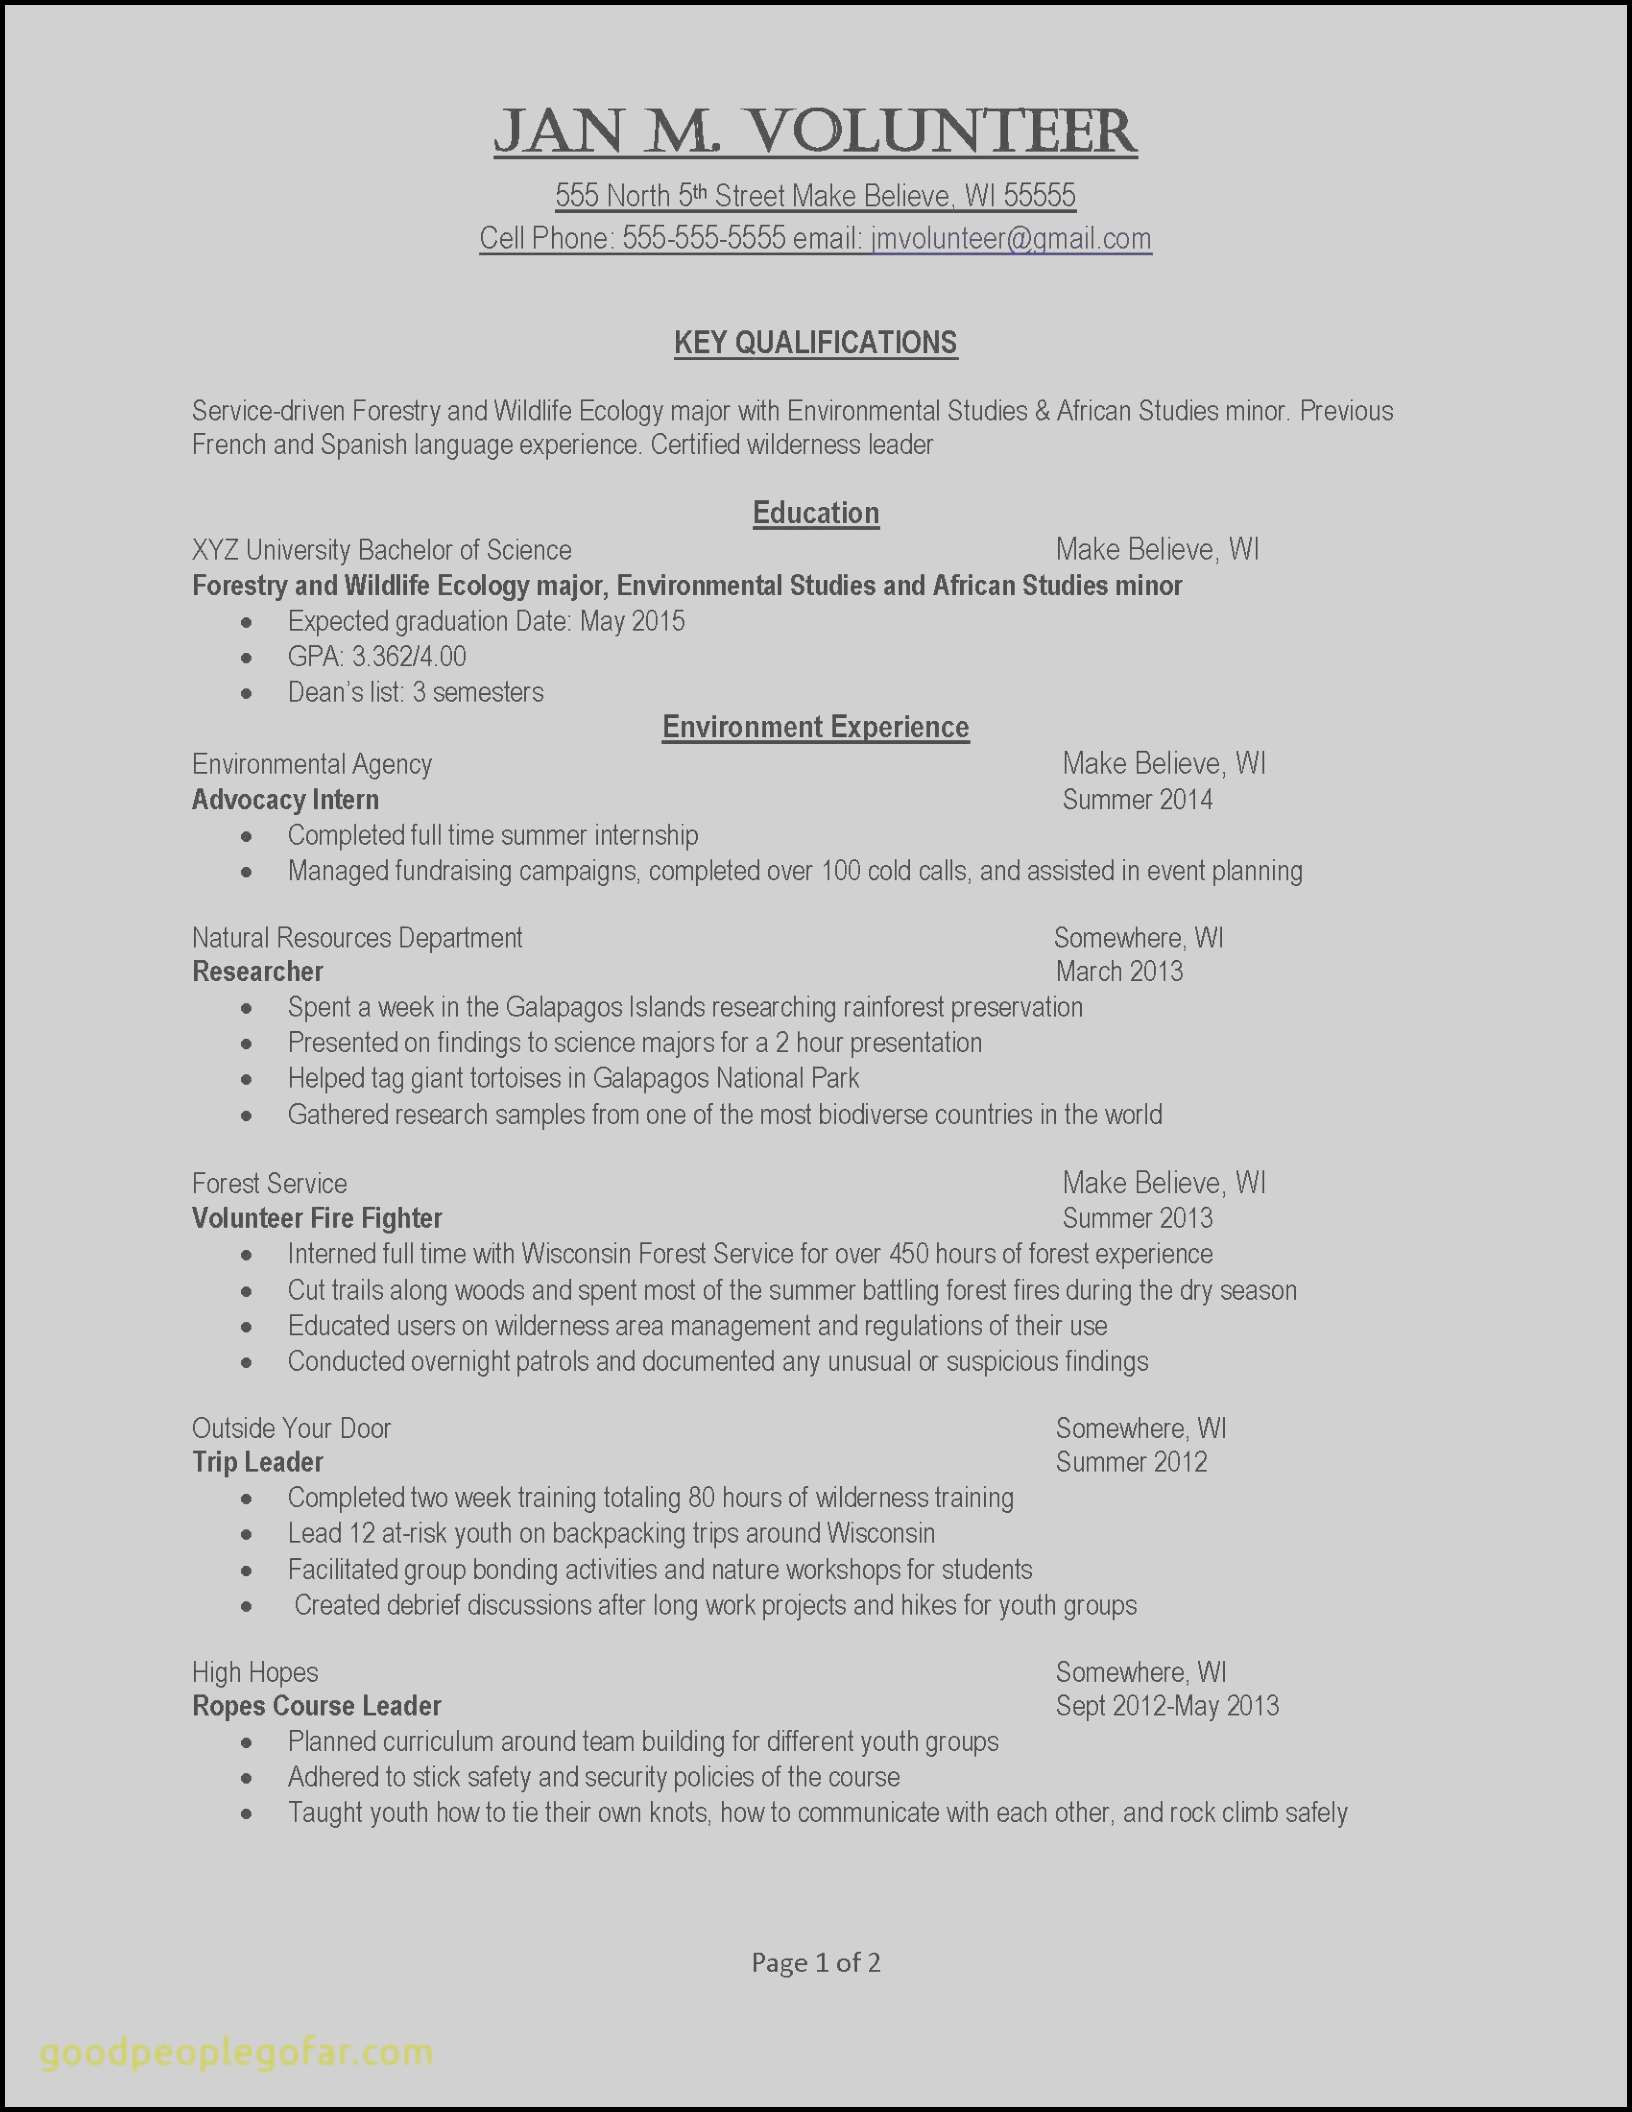 Scientific Resume Template - Resume Examples for Warehouse Position Recent Example Job Resume